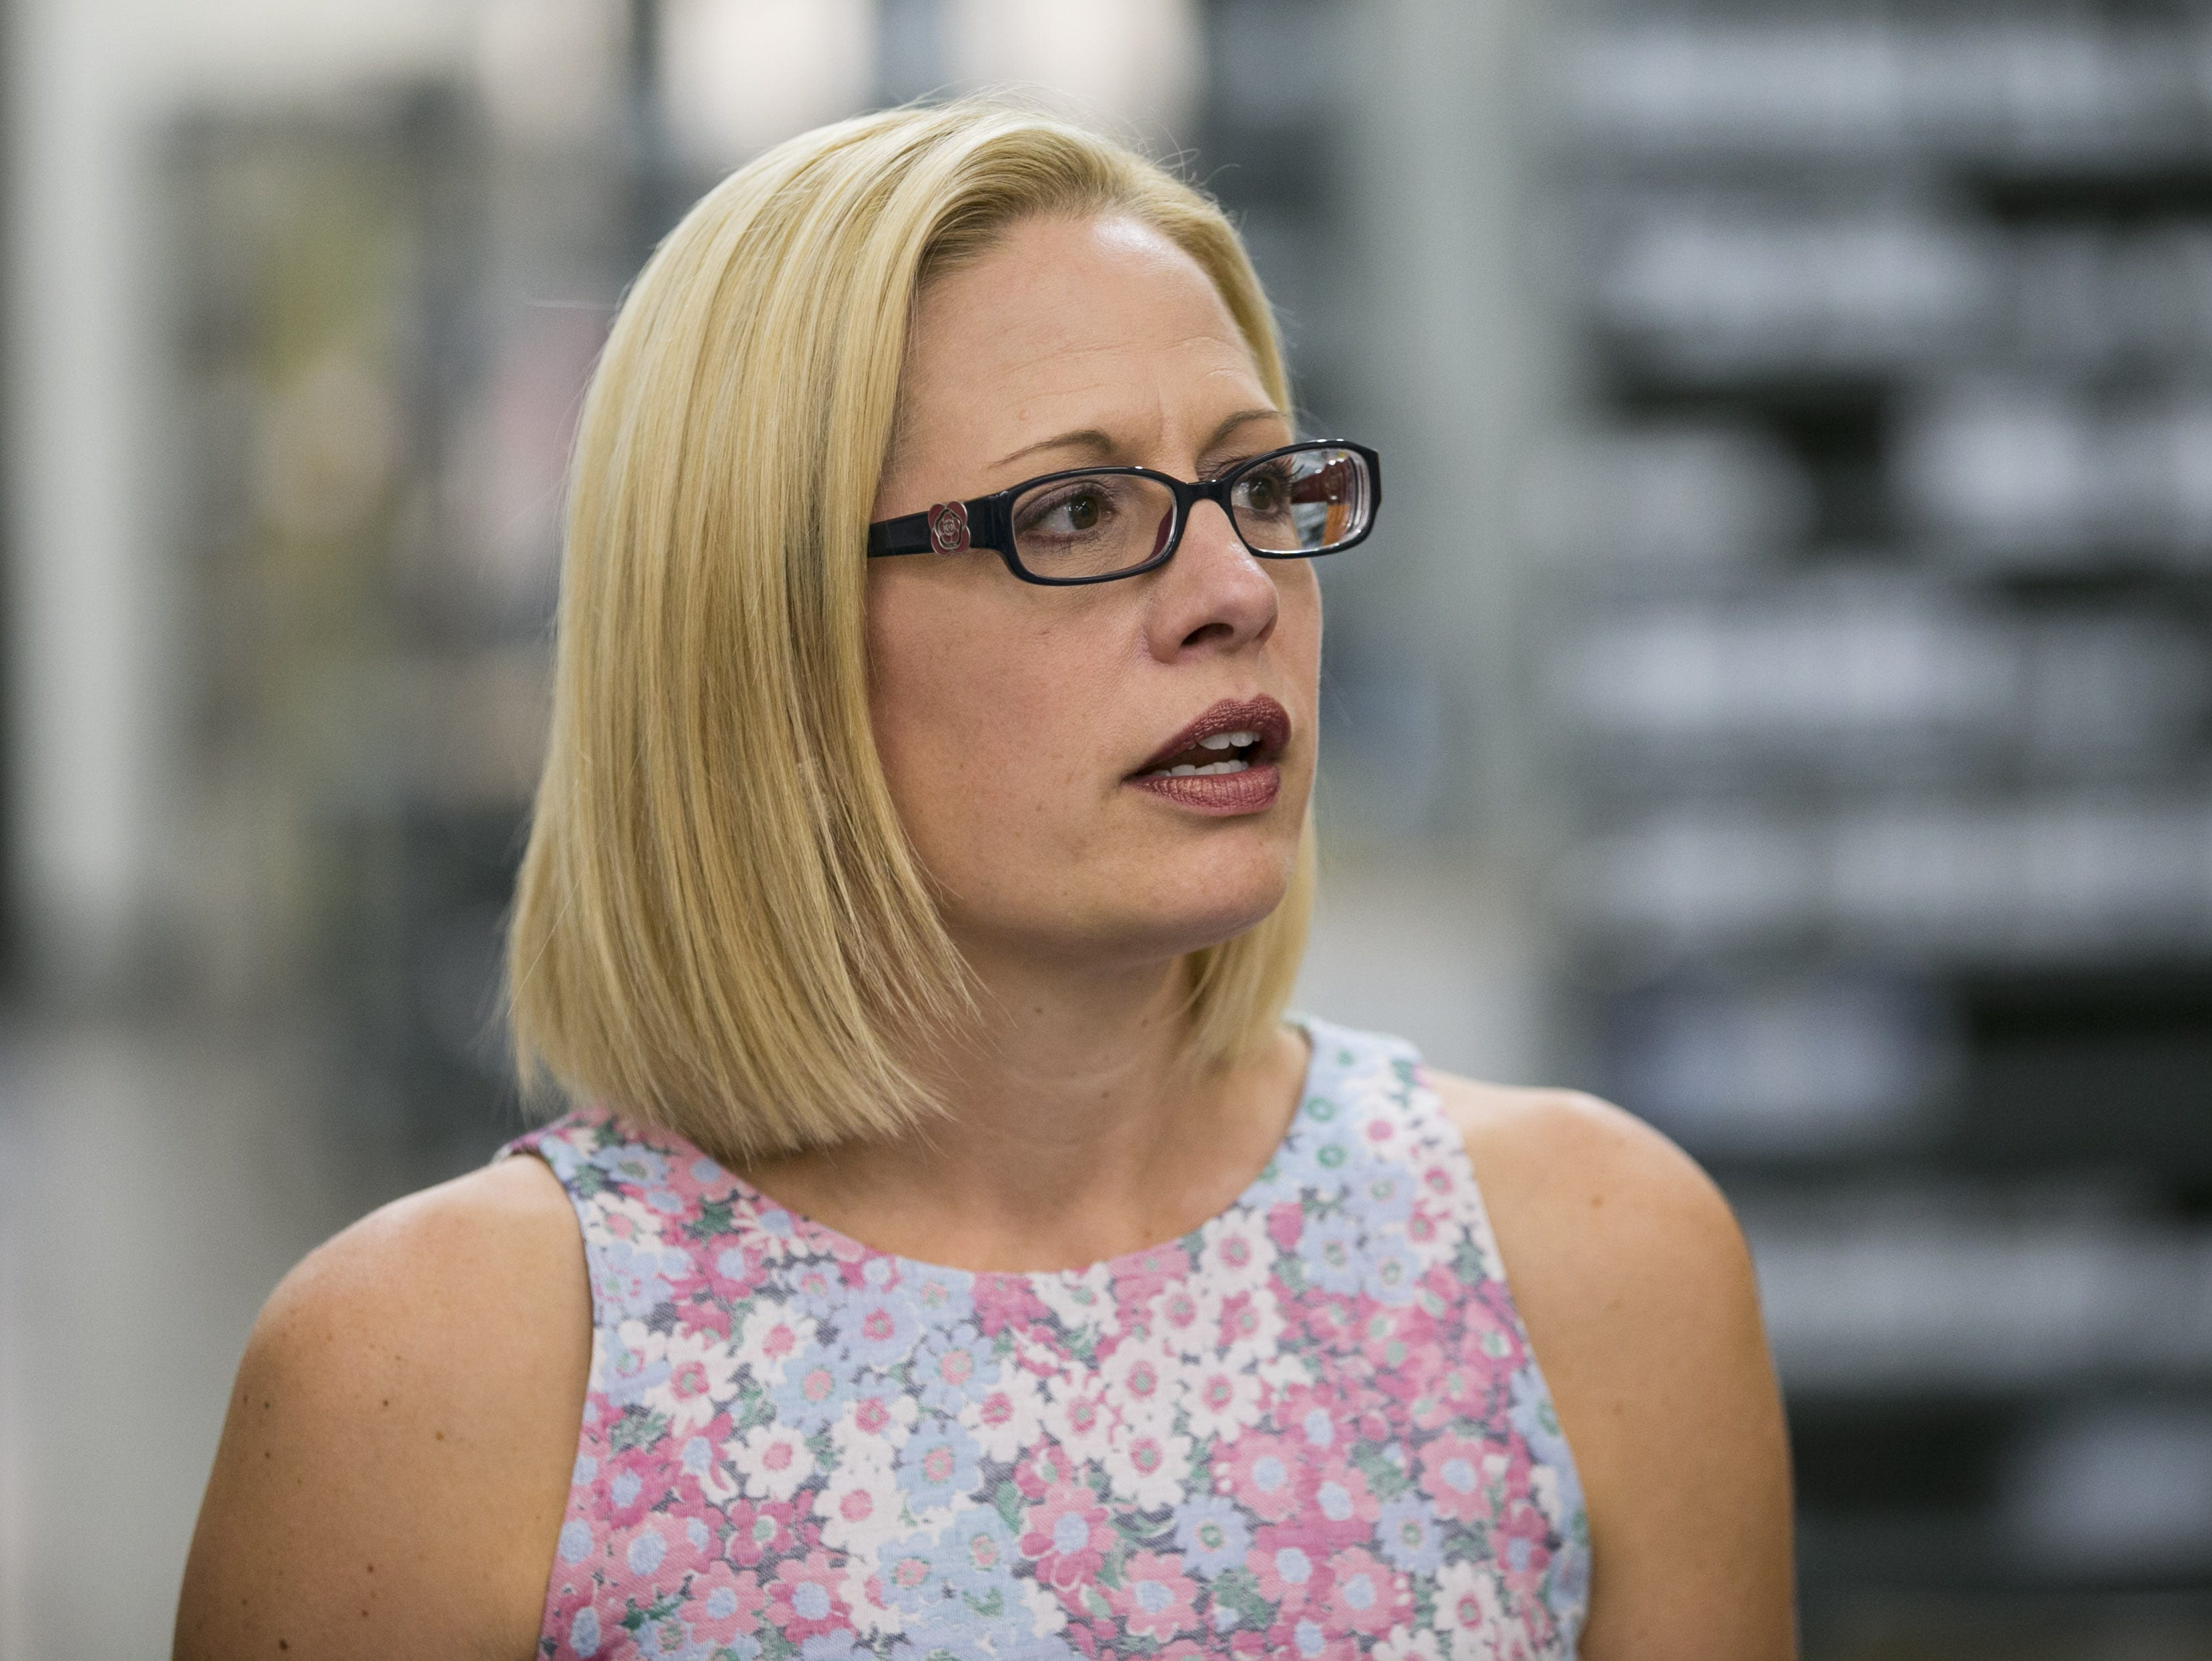 U.S. Rep. Kyrsten Sinema, who is running for U.S. Senate as a Democrat, tours Blockwise Engineering LLC in Tempe on July 2, 2018.